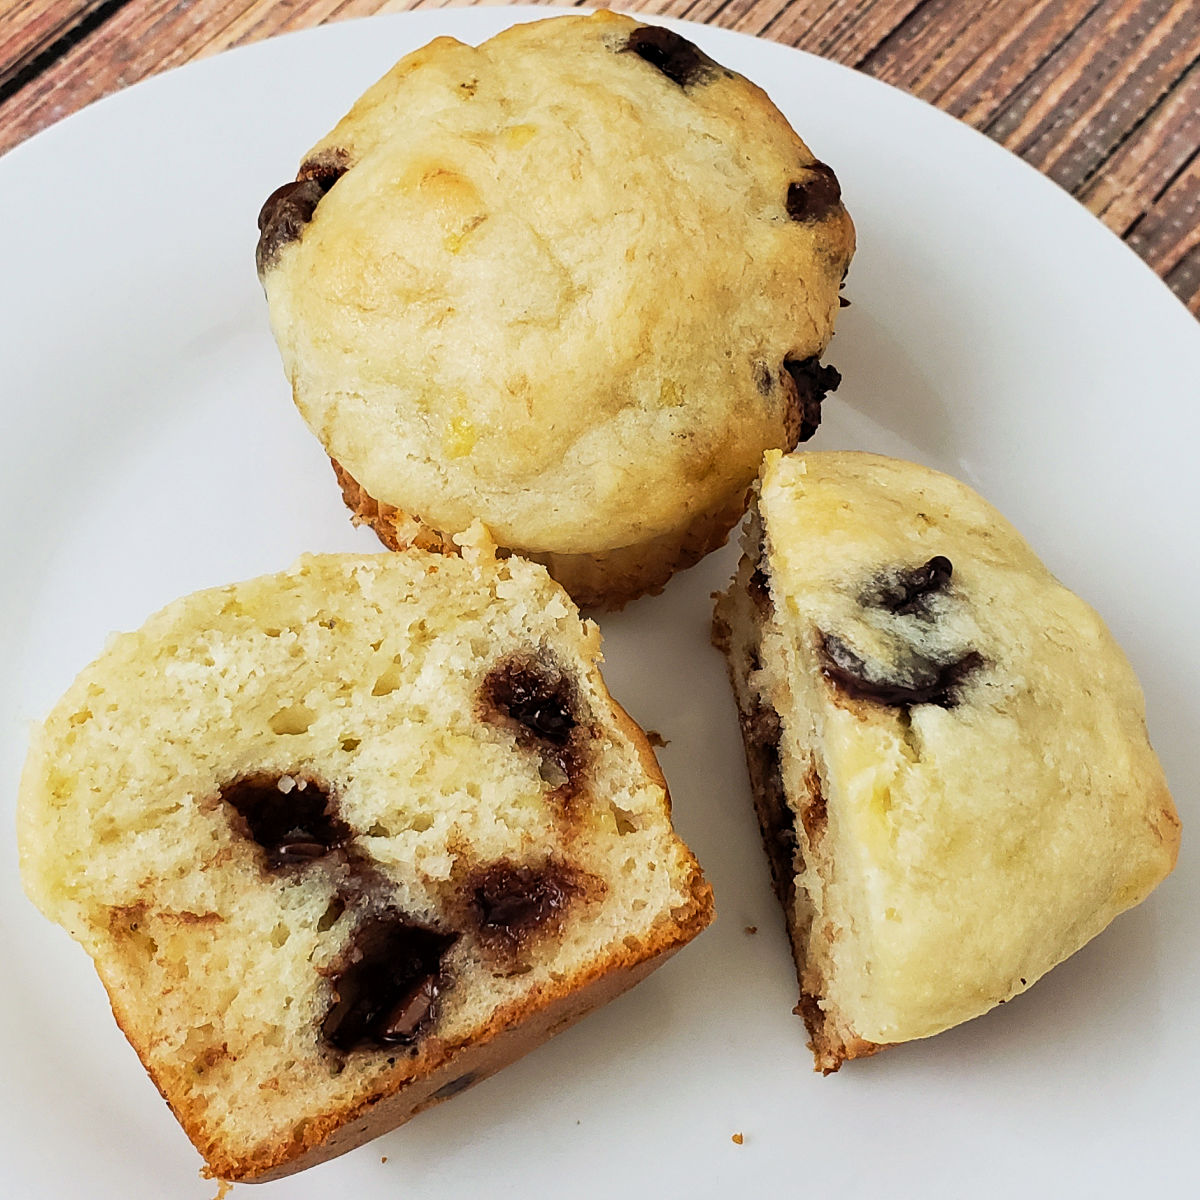 Two gluten free banana muffins on a plate with one cut in half to show melted chocolate chips.